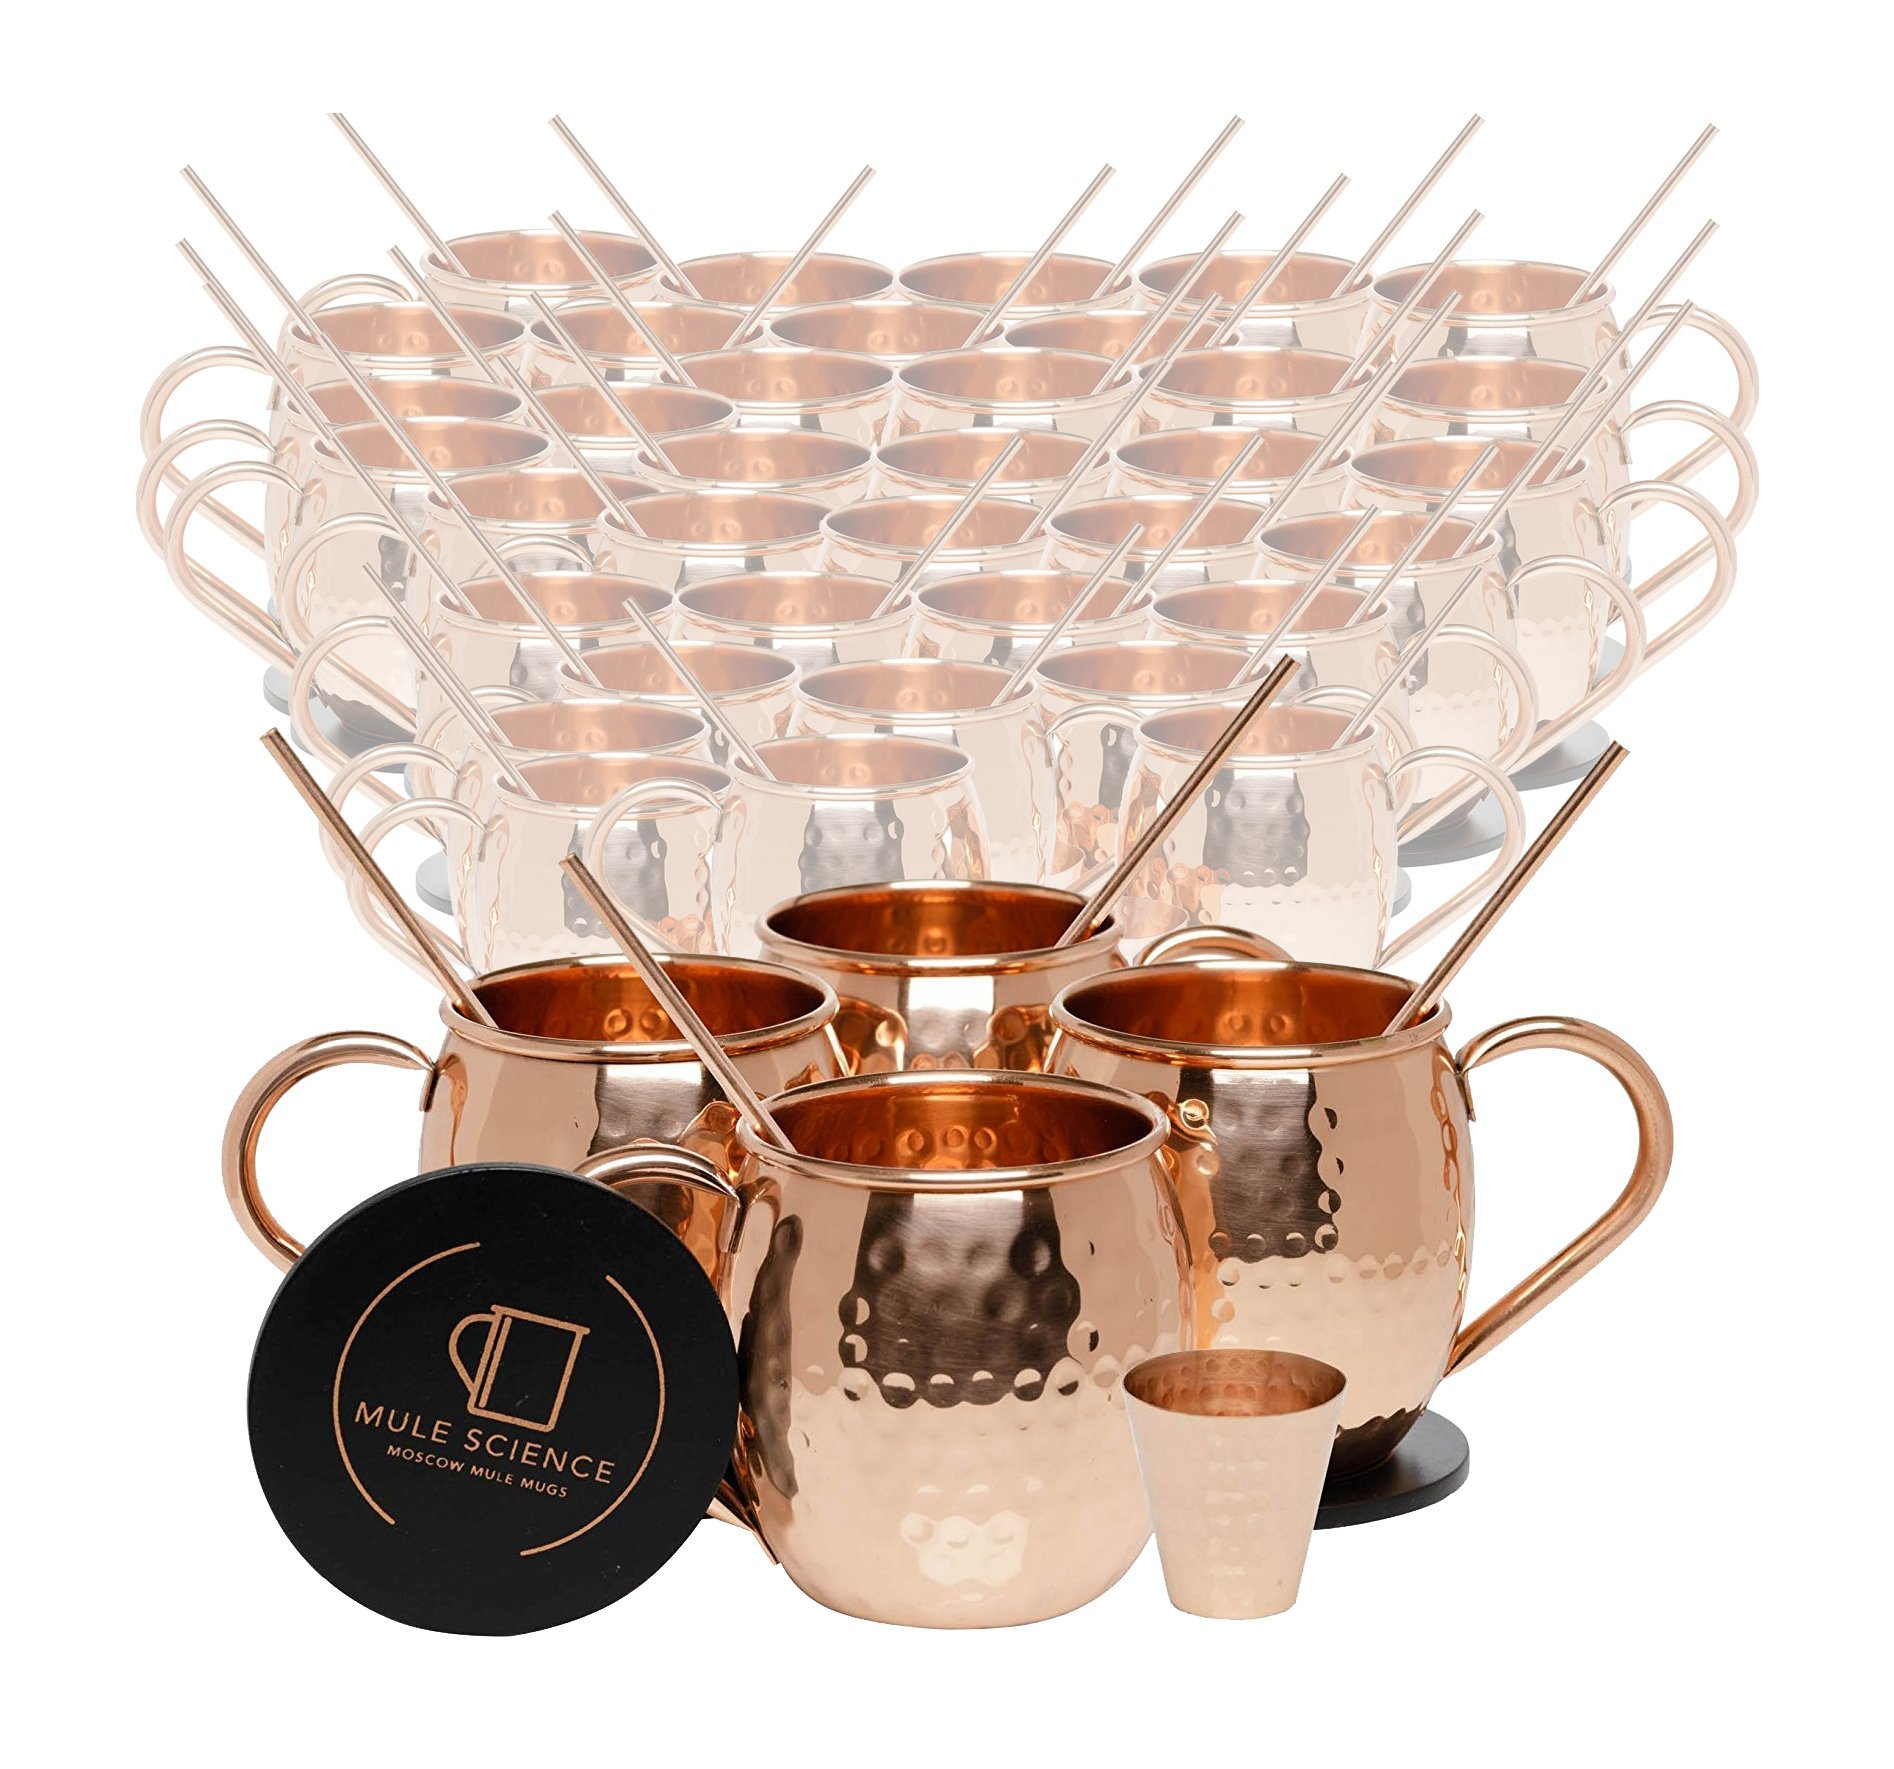 Set of 40 Pure Copper Moscow Mule Mugs by Mule Science with BONUS: Highest Quality Cocktail Copper 40 Straws, 2 Shot glasses and 40 coasters!